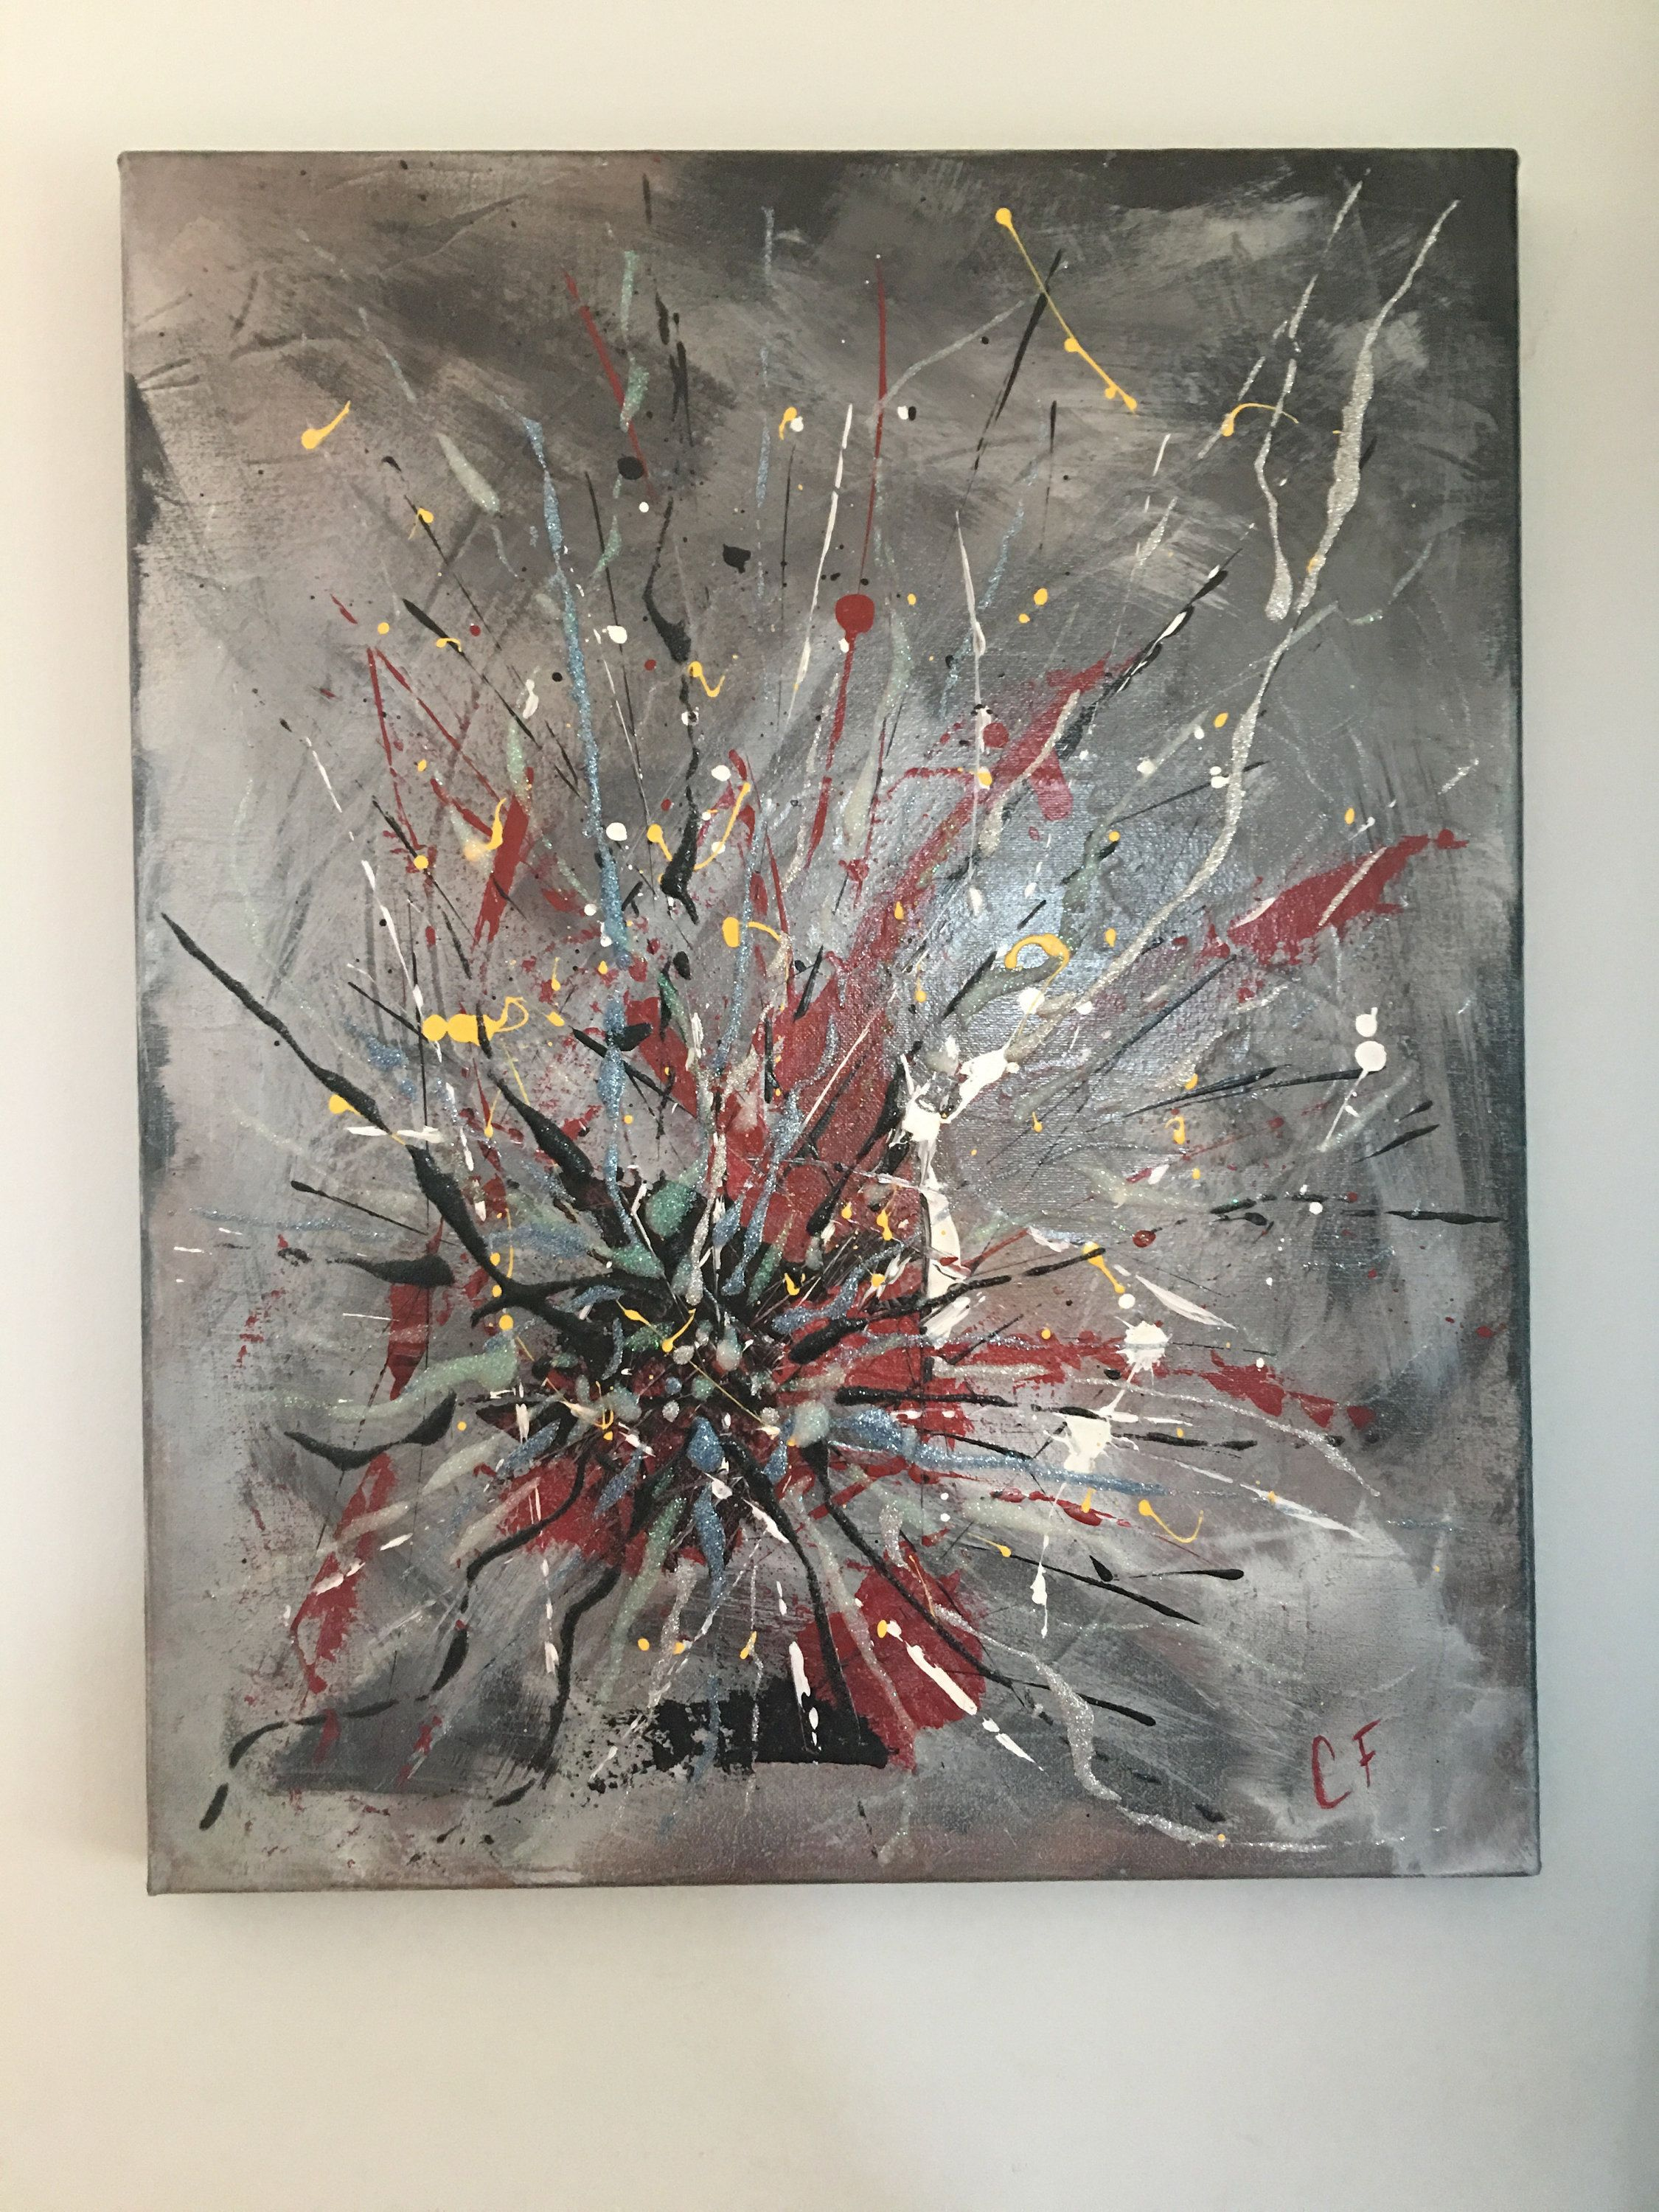 Mixted Media Painting On Canvas Acrylic And Glitter 16X20